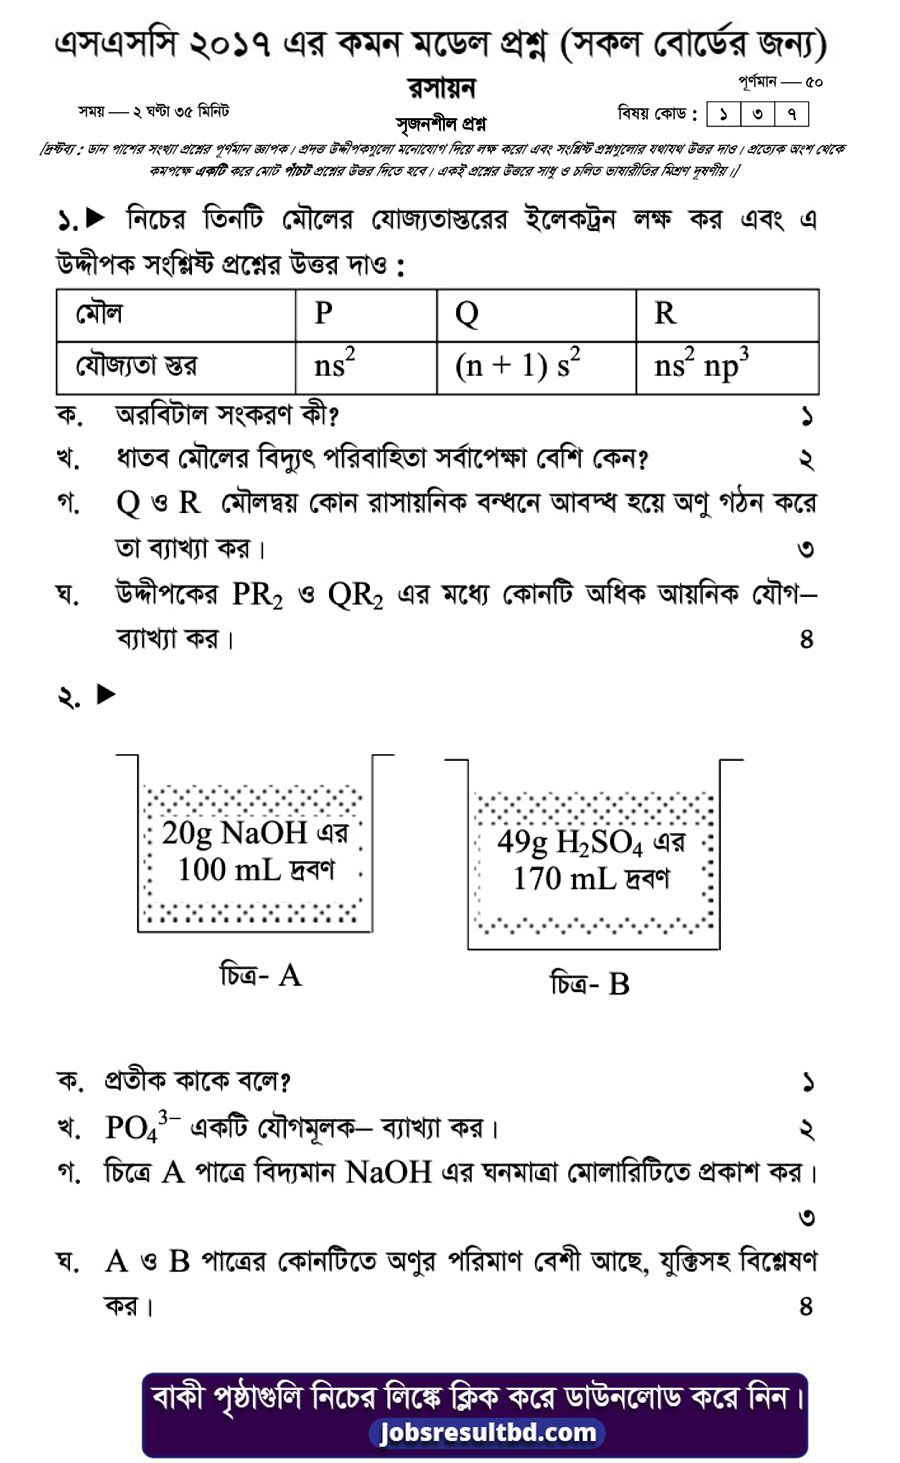 Chemistry Ssc Exam Suggestion And Question Patterns 2017 1 This